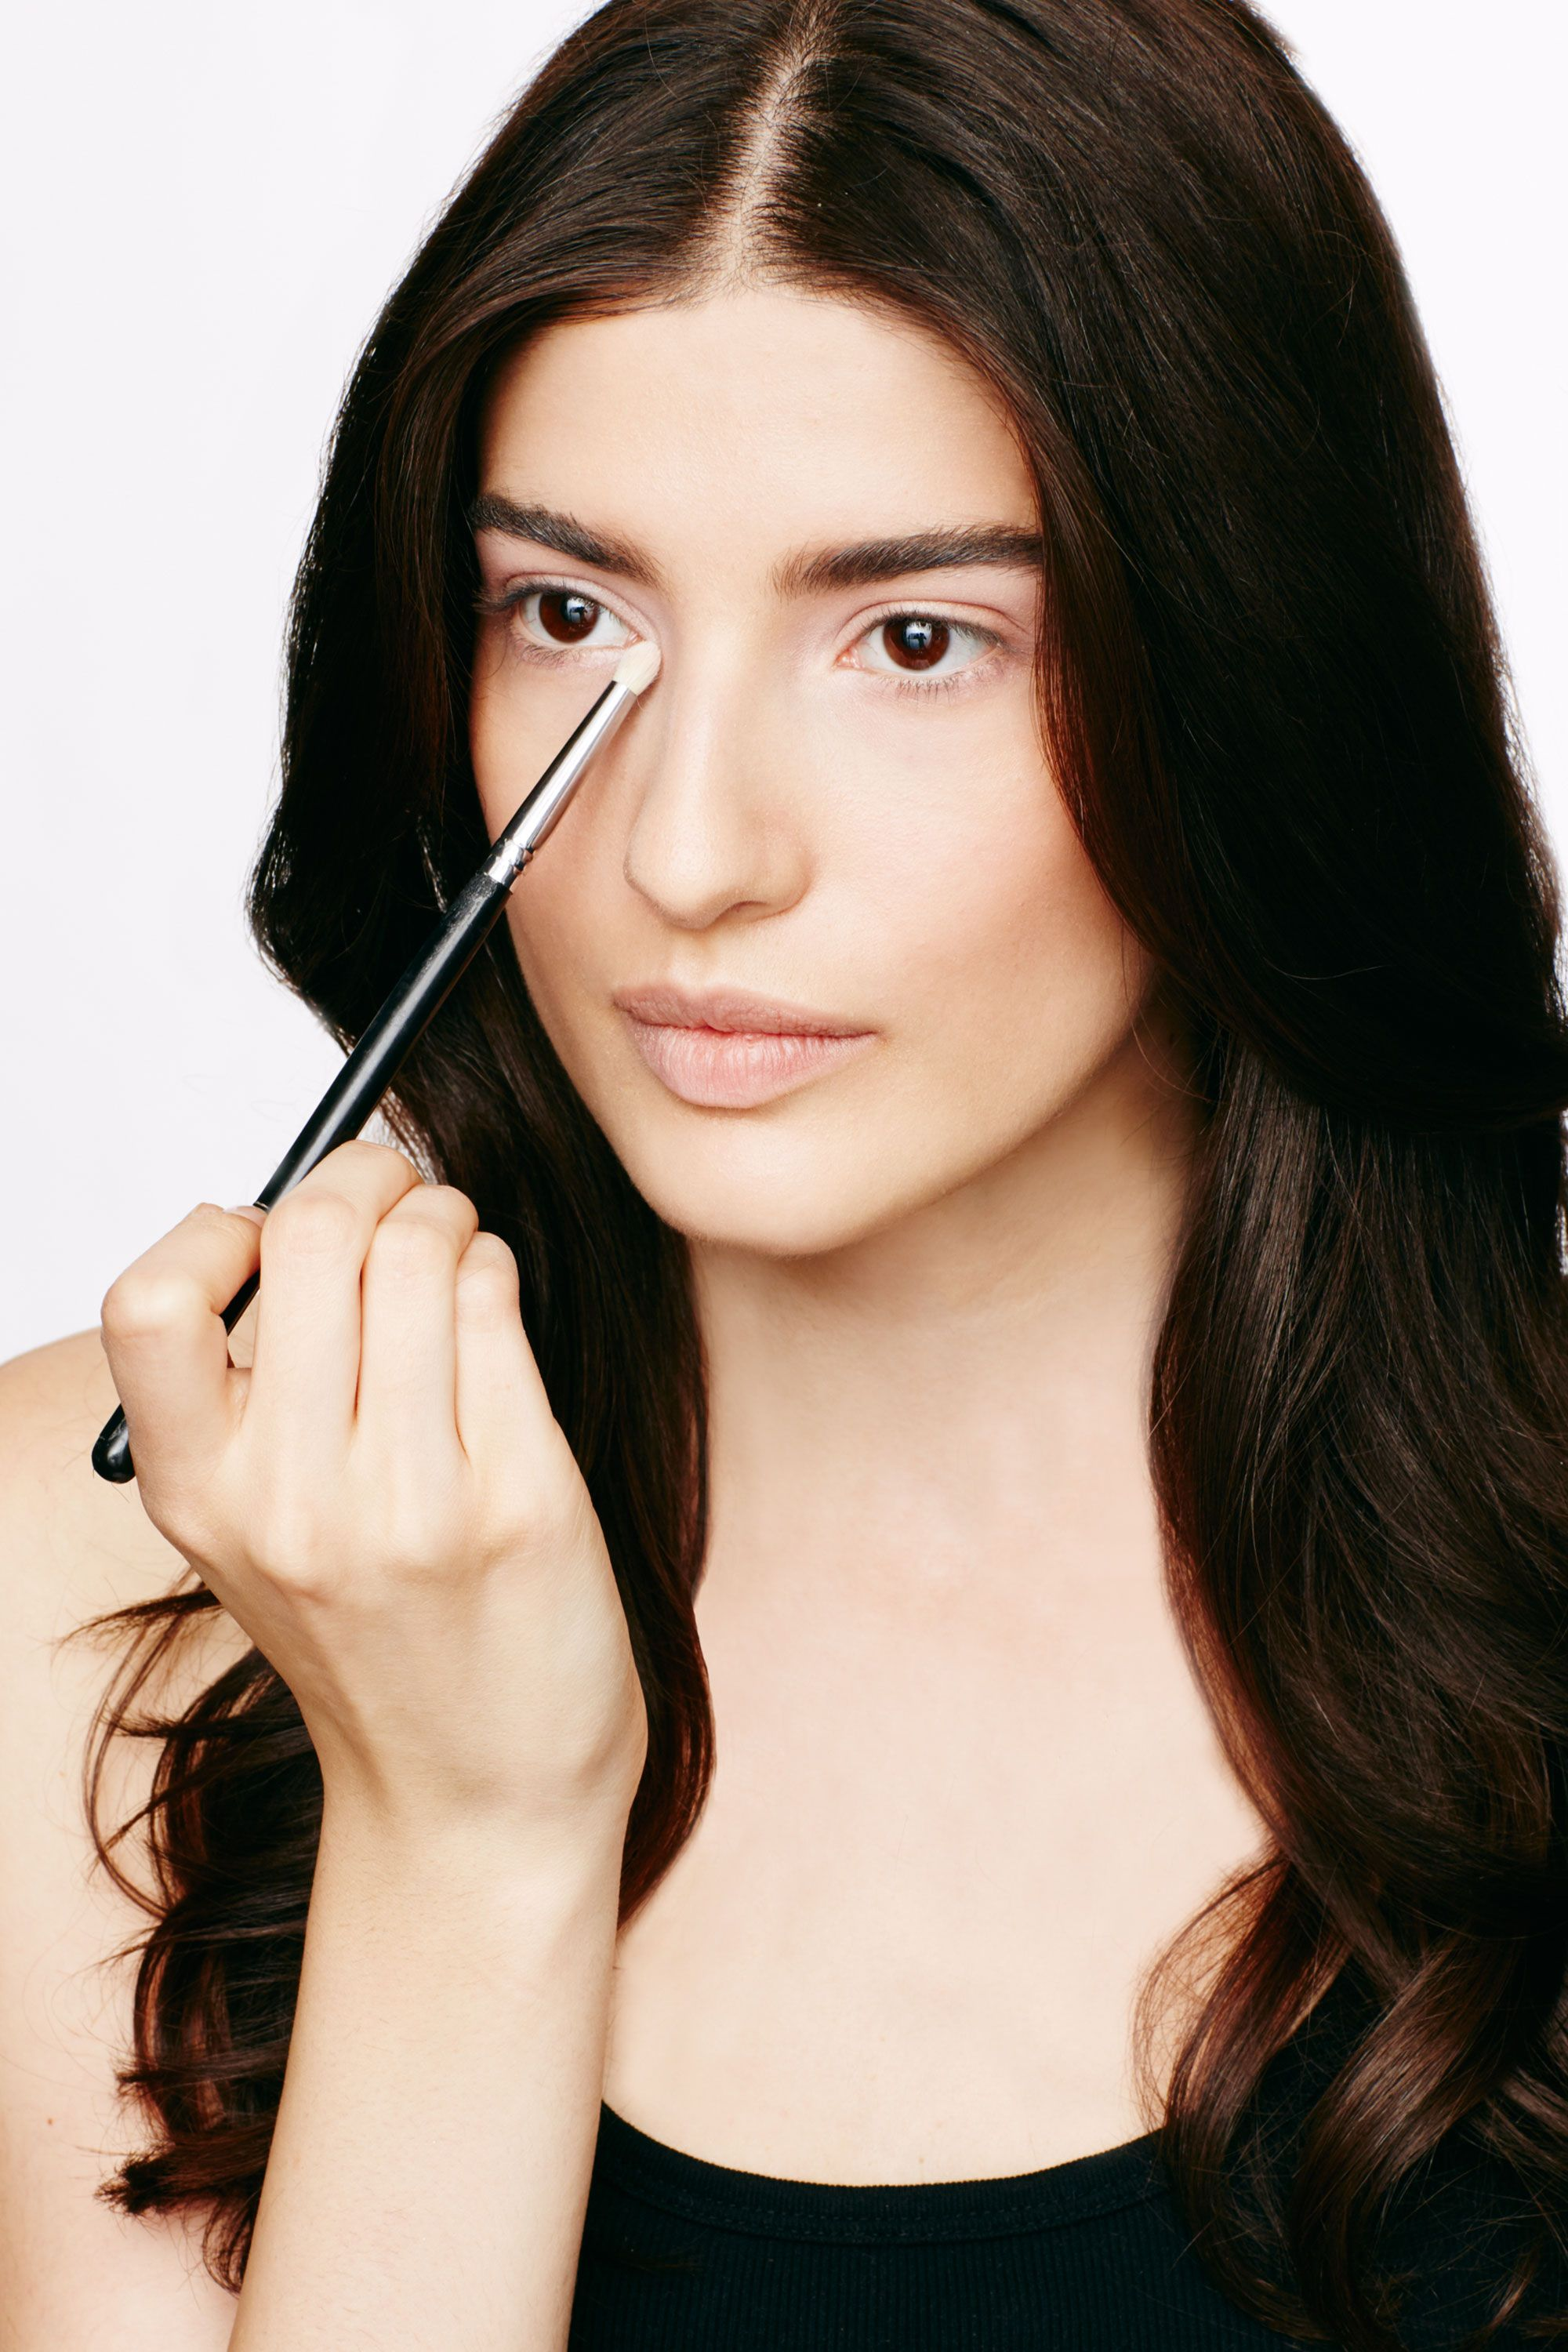 <p>With a small eyeshadow brush, sweep the light peach shade across the lid up to the crease and into the inner corner. The neutral shade will anchor bolder layers, Lledo says.</p>